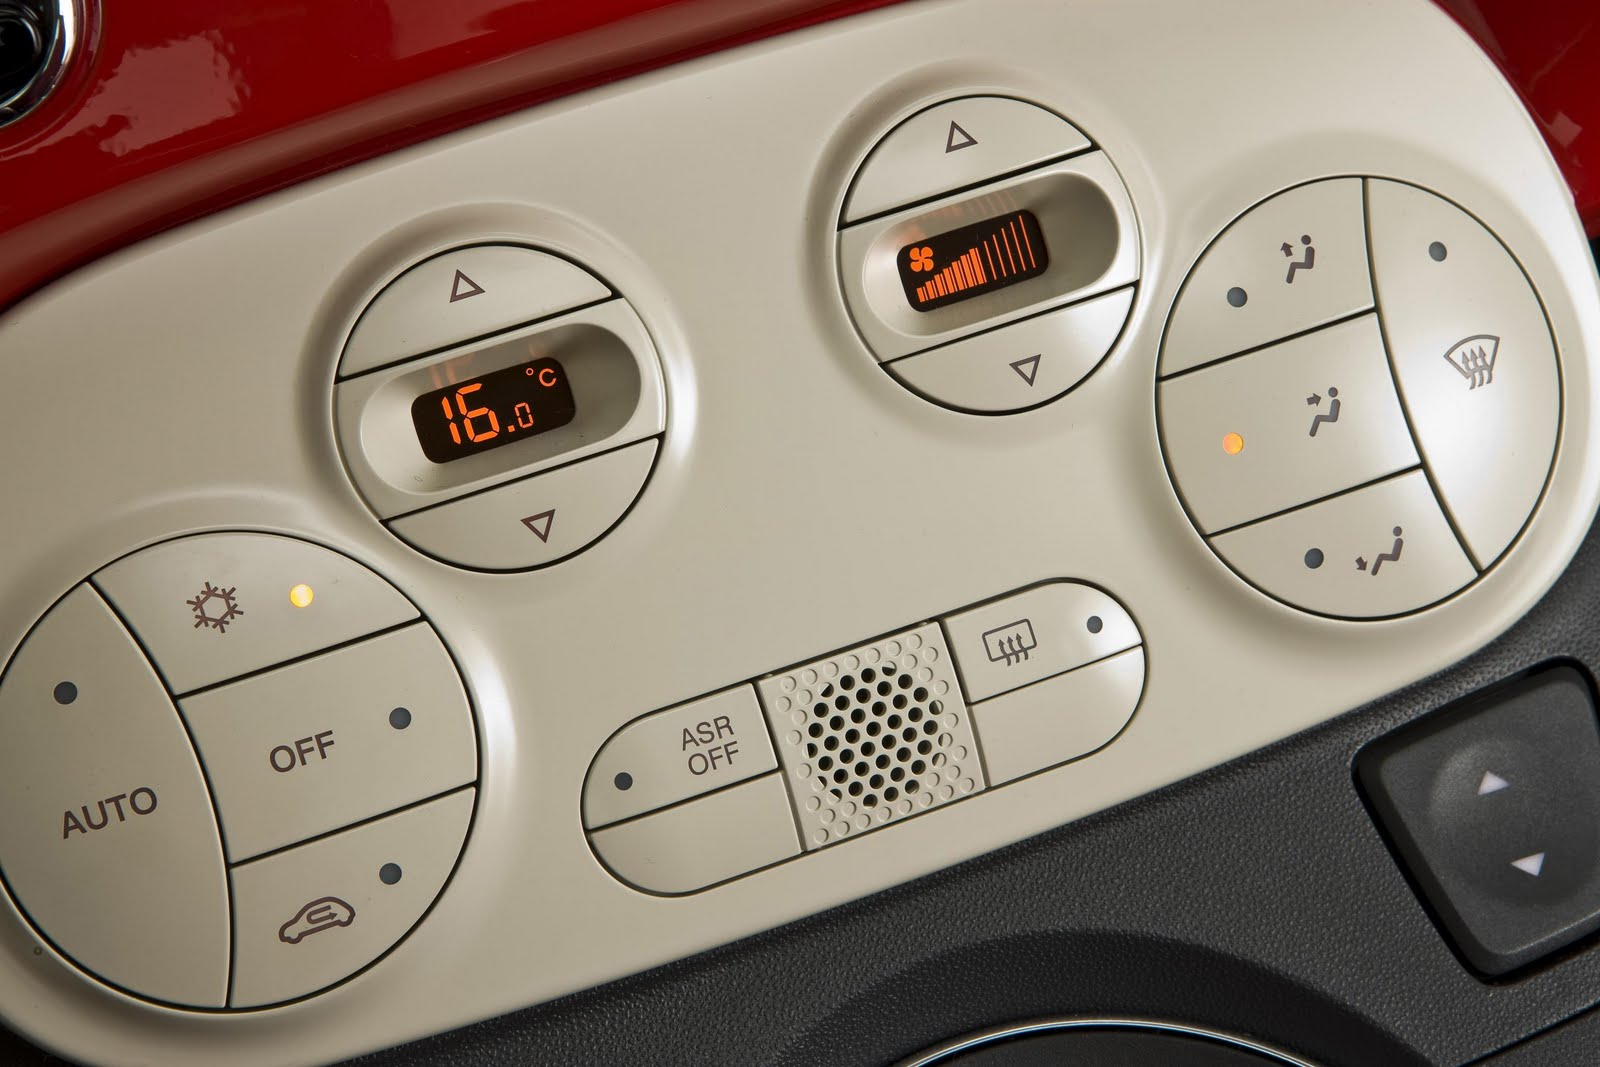 Inside the Fiat 500: Automatic Climate Control